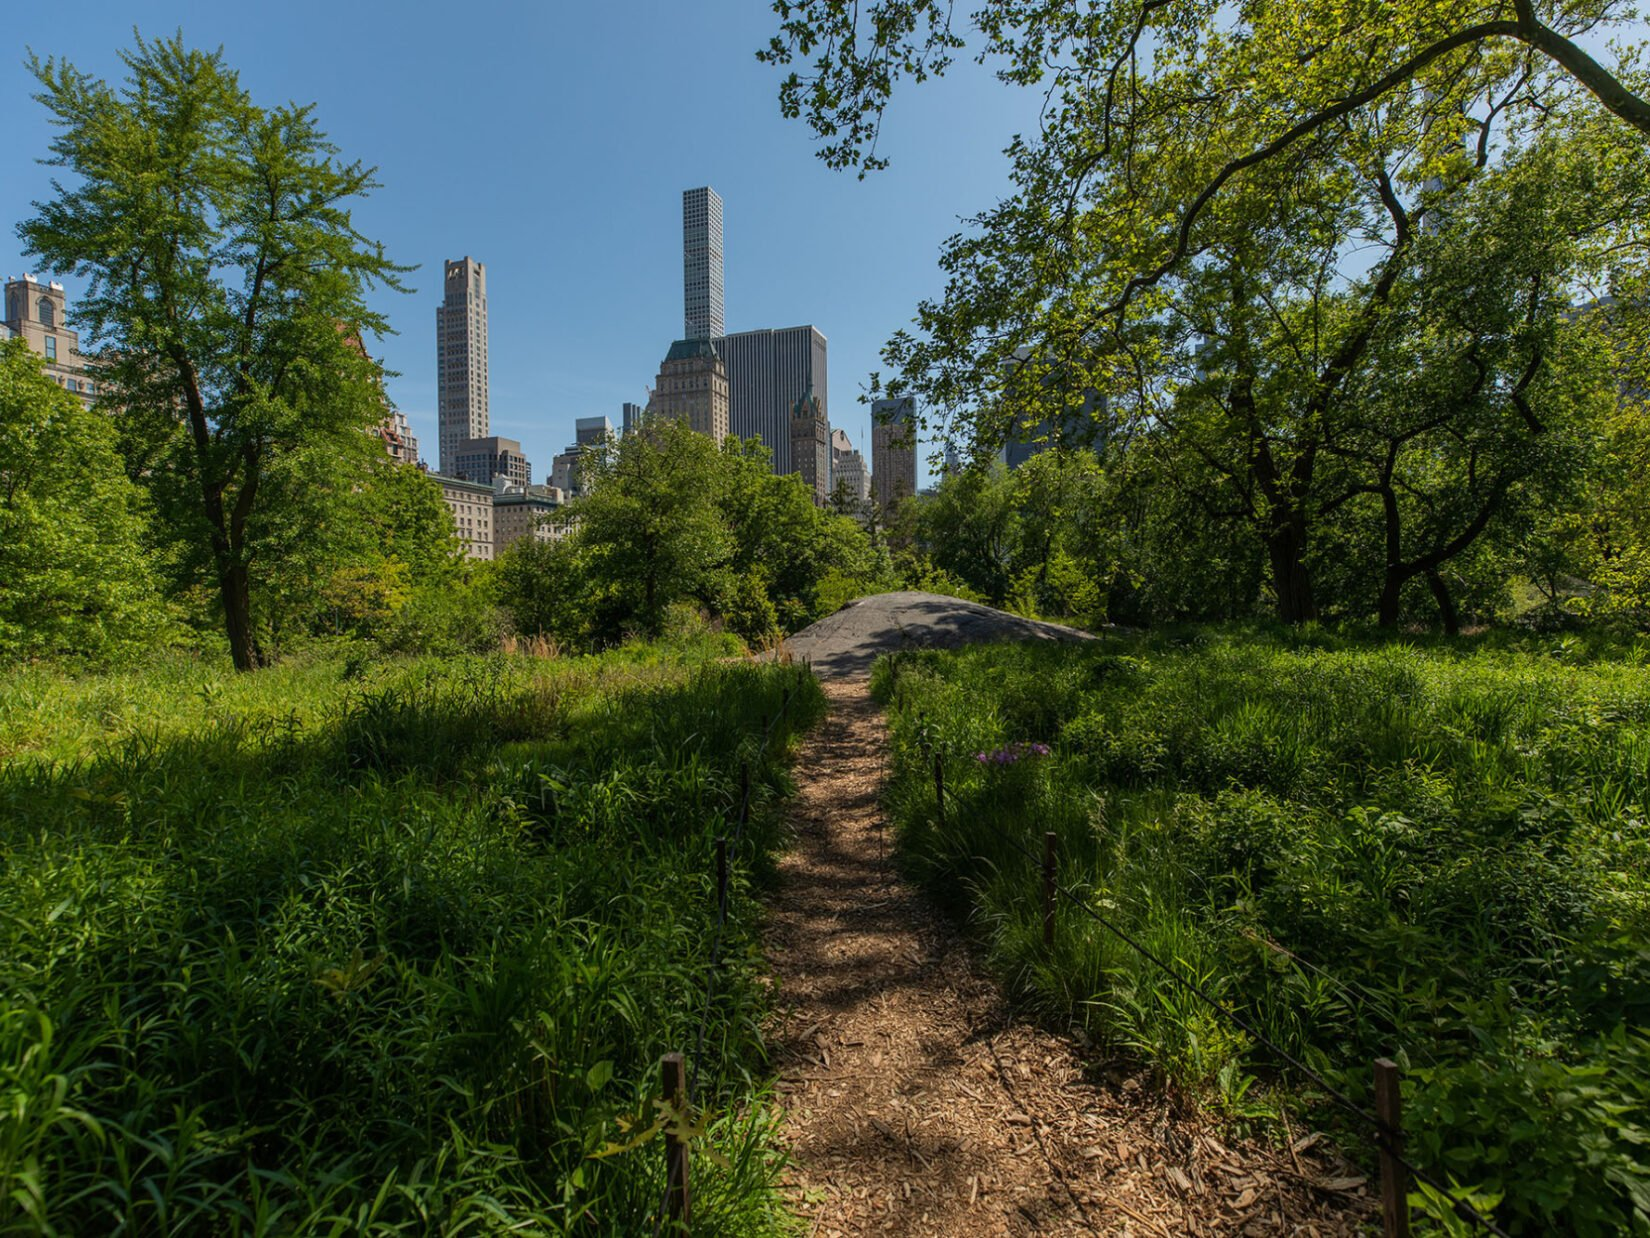 A footpath leading up the Dene Slope, with the skyline of Manhattan in the distance